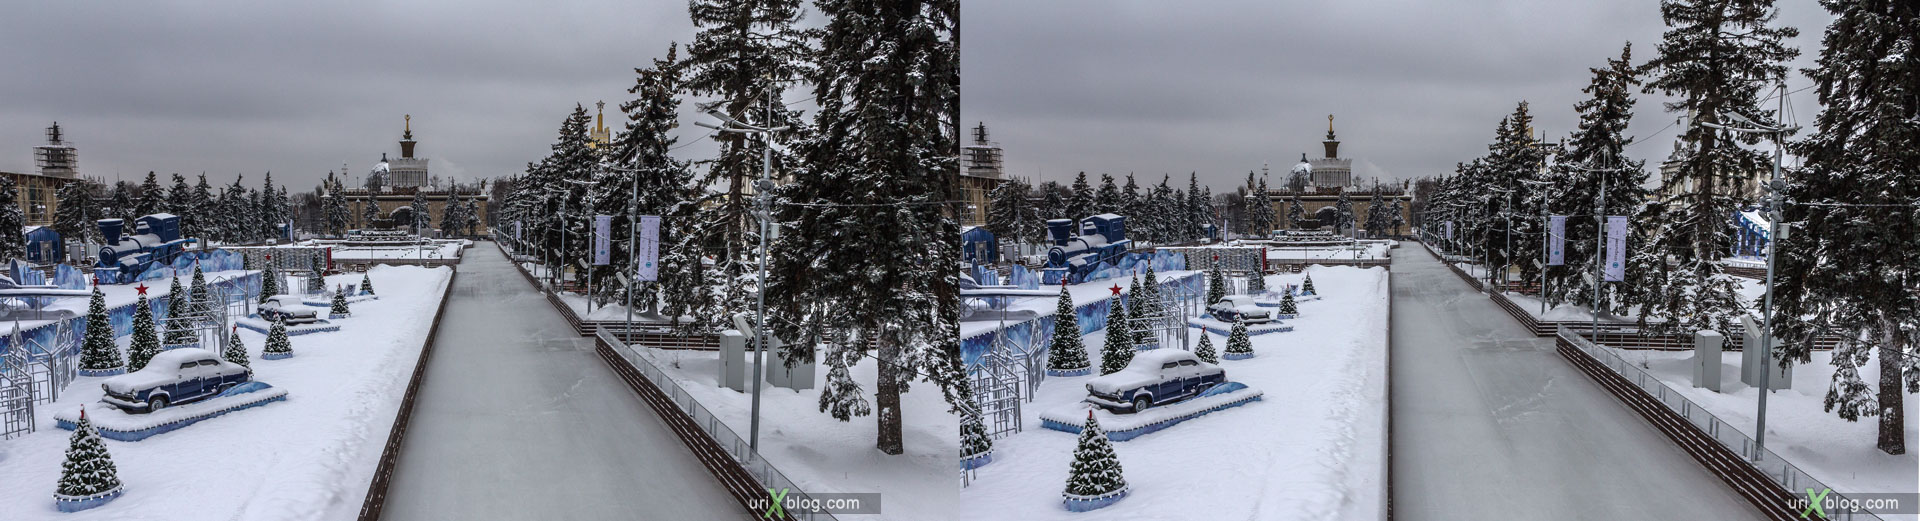 Skating-rink, VDNKh, VVTs, park, winter, ice, snow, Moscow, Russia, 3D, stereo pair, cross-eyed, crossview, cross view stereo pair, stereoscopic, 2015